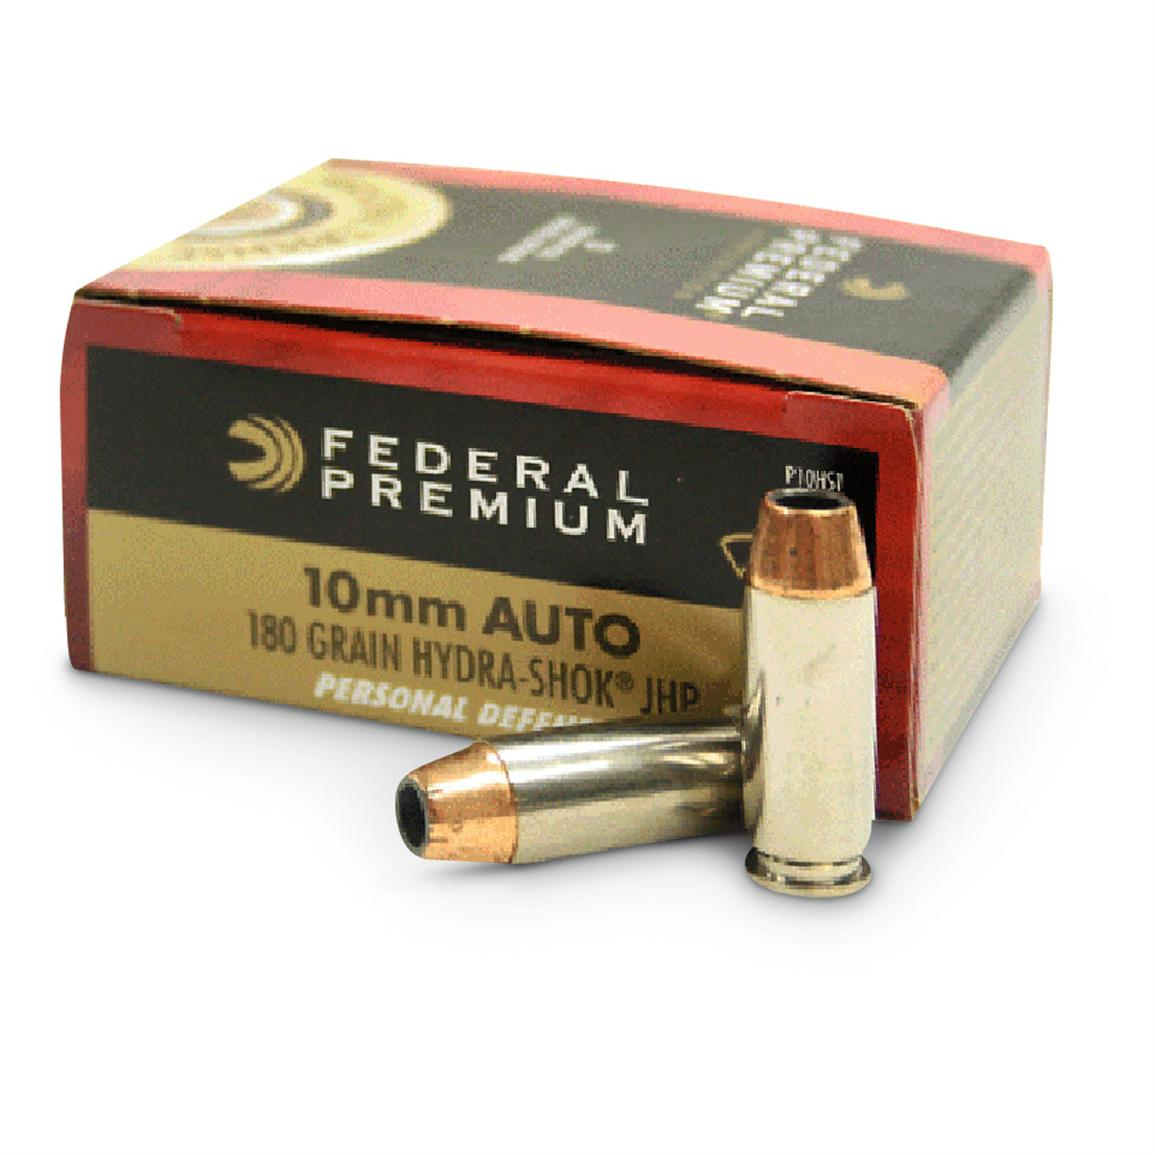 Federal Hydra-Shok, 10mm, Hollow-Point, 180 Grain, 60 Rounds